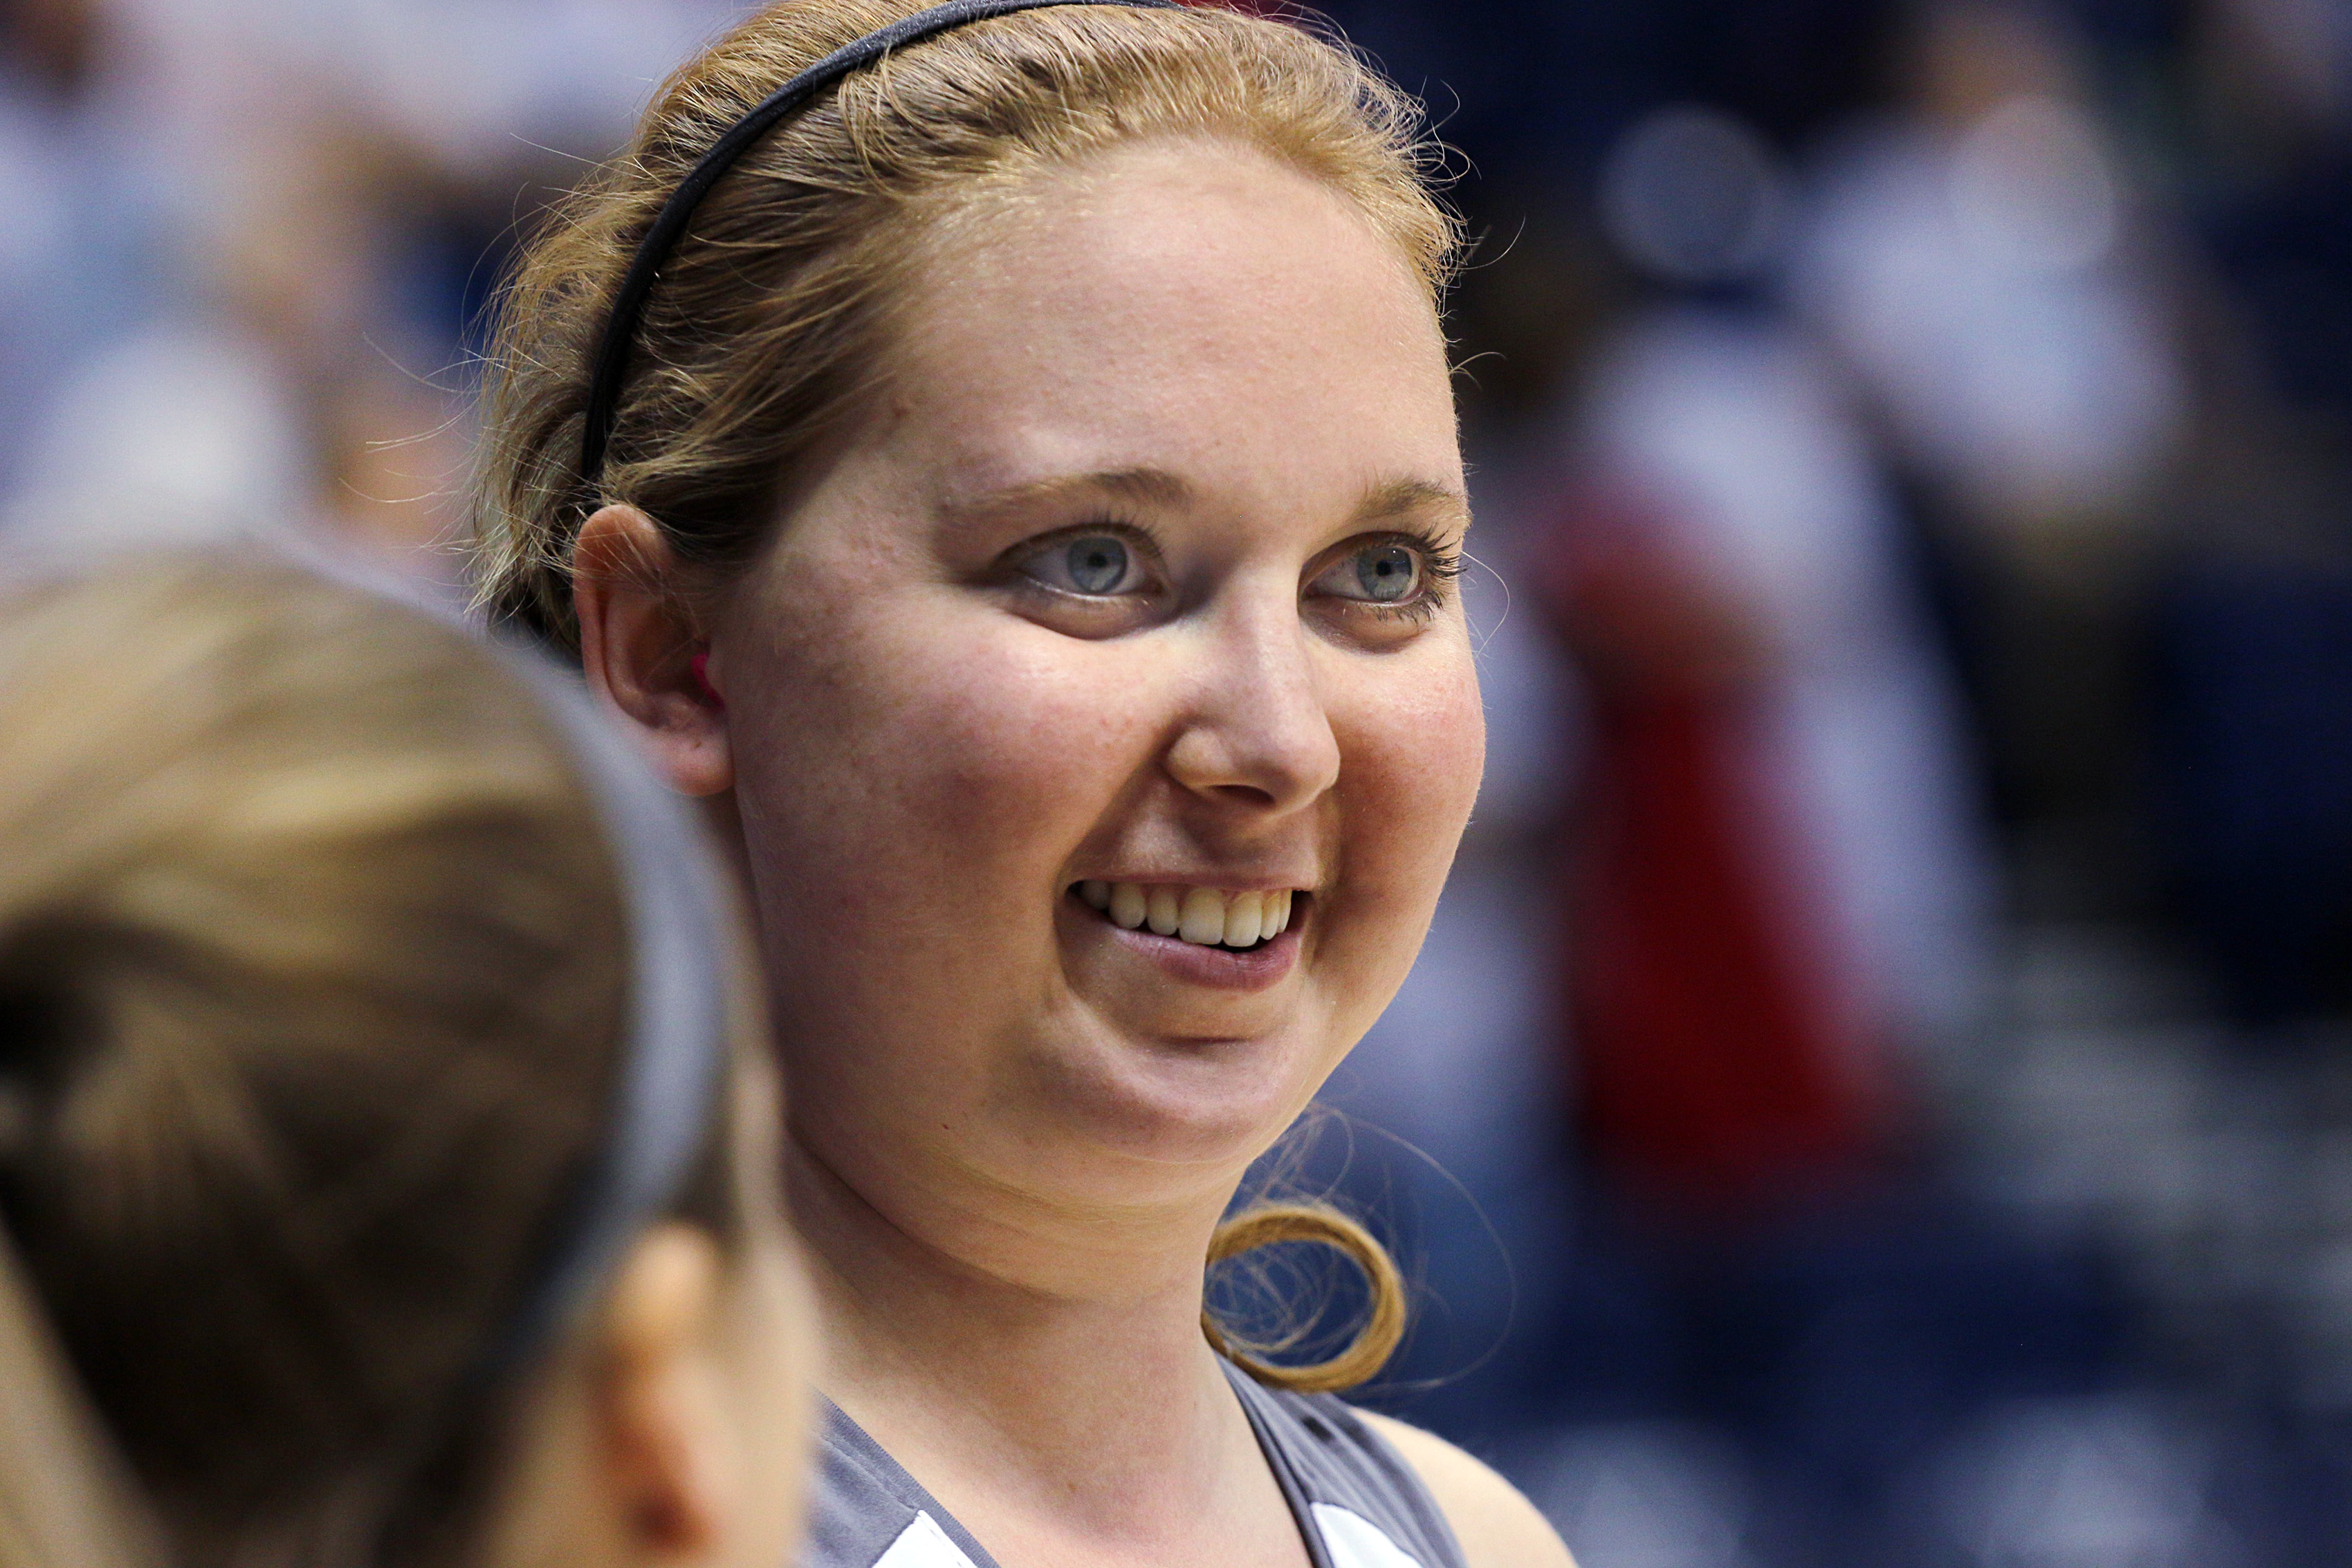 FILE - In this Nov. 2, 2014, file photo, Mount St. Joseph's Lauren Hill laughs with a teammate before her first NCAA college basketball game, against Hiram University, at Xavier University in Cincinnati. The 19-year-old freshman basketball player died at